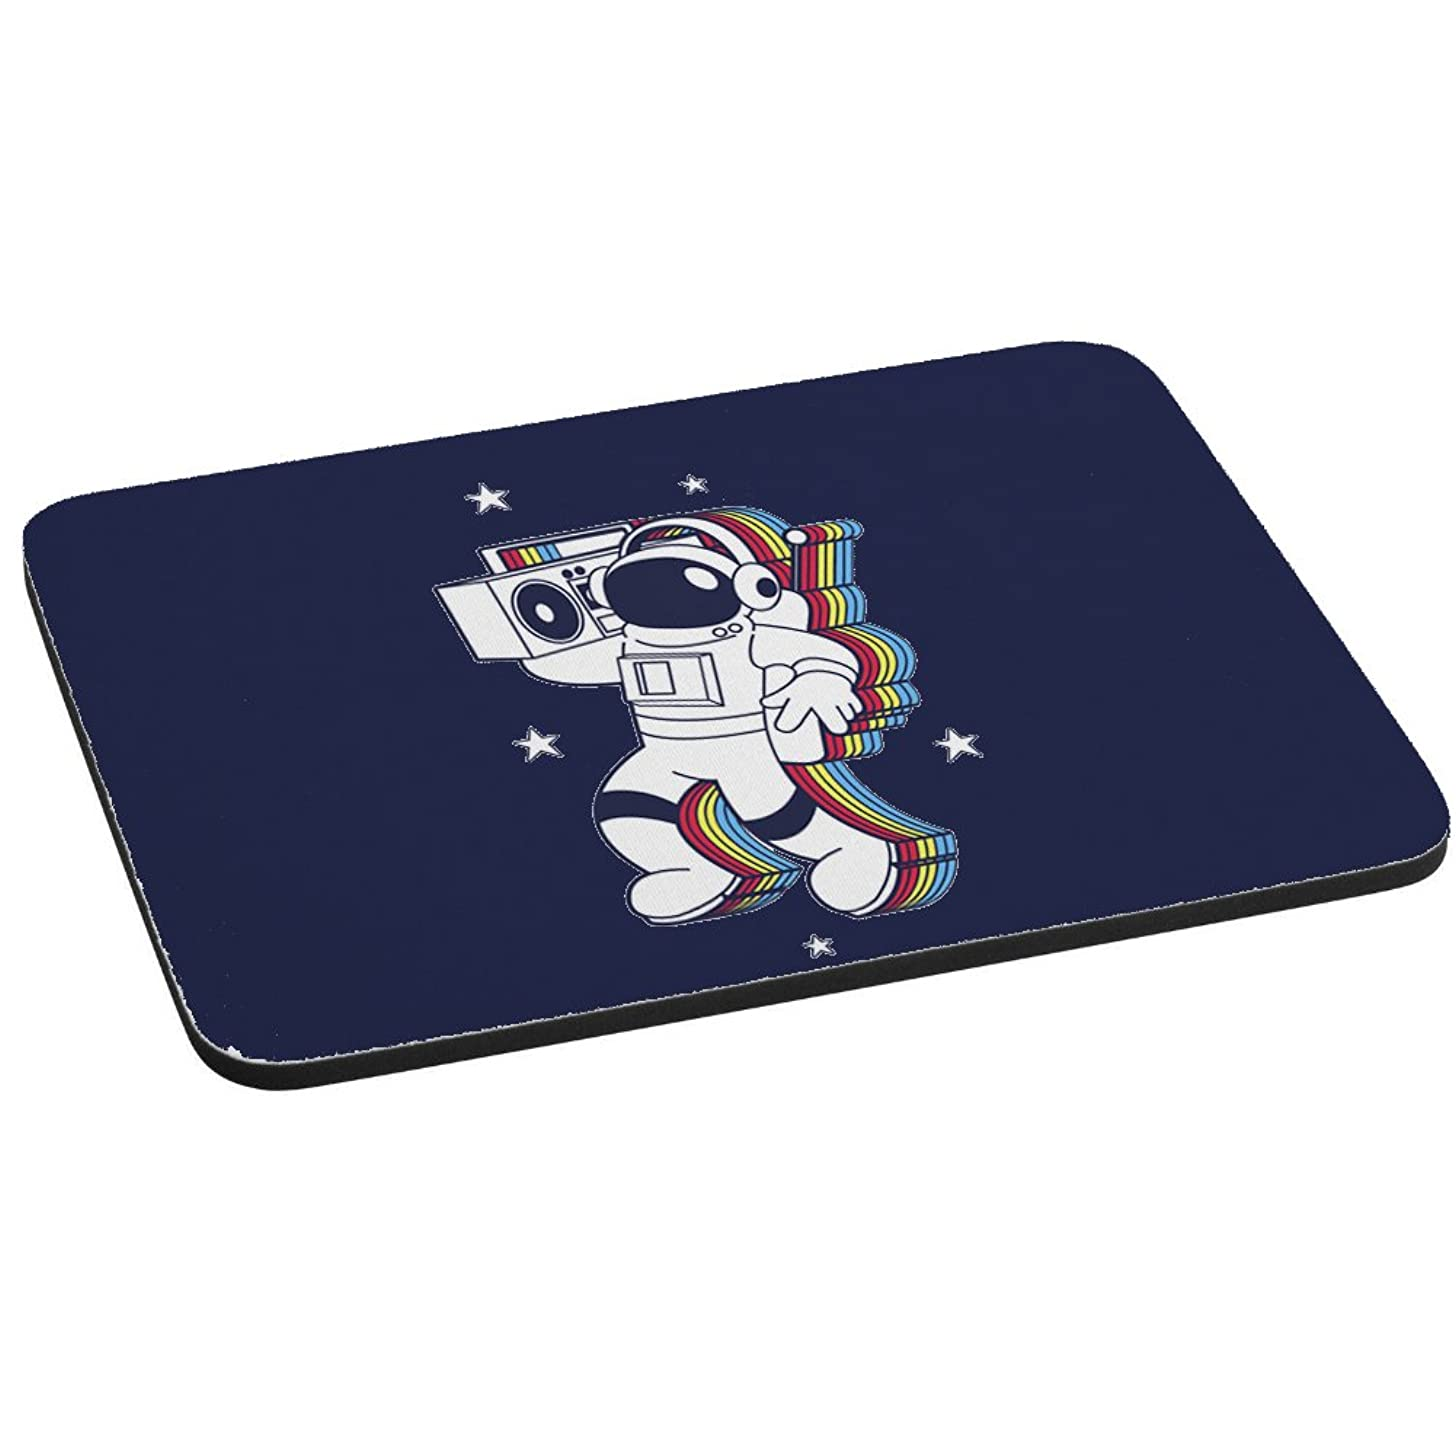 Computer Mouse Pad - Rockin Space Man Astronaut w/Boombox Colorful